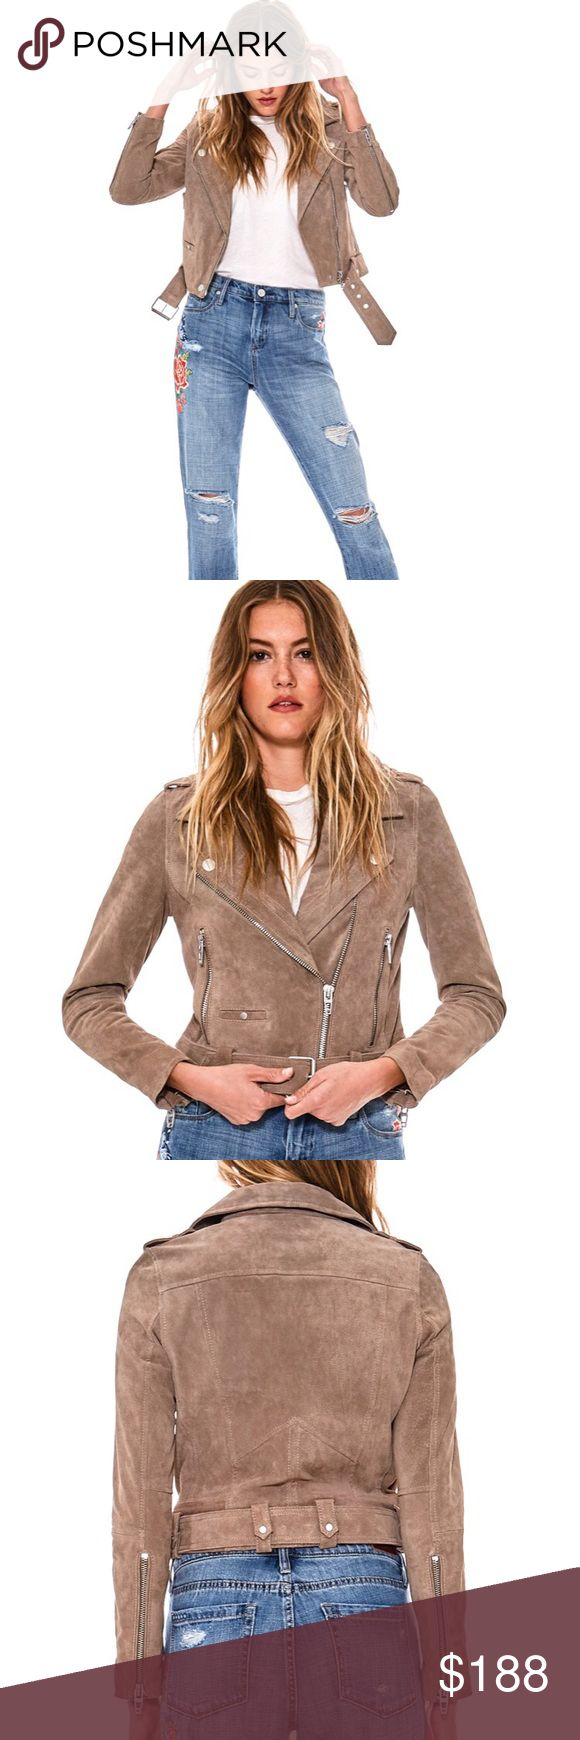 BLANK NYC Genuine Suede Leather Jacket BLANK NYC Genuine Suede Leather Jacket. Stock photos are to show fit. Jacket for sale is the same style and fit, but with added fringe detail at sleeves and front, as seen in my own photos. Gorgeous jacket, genuine suede, amazing quality. Blank NYC Jackets & Coats